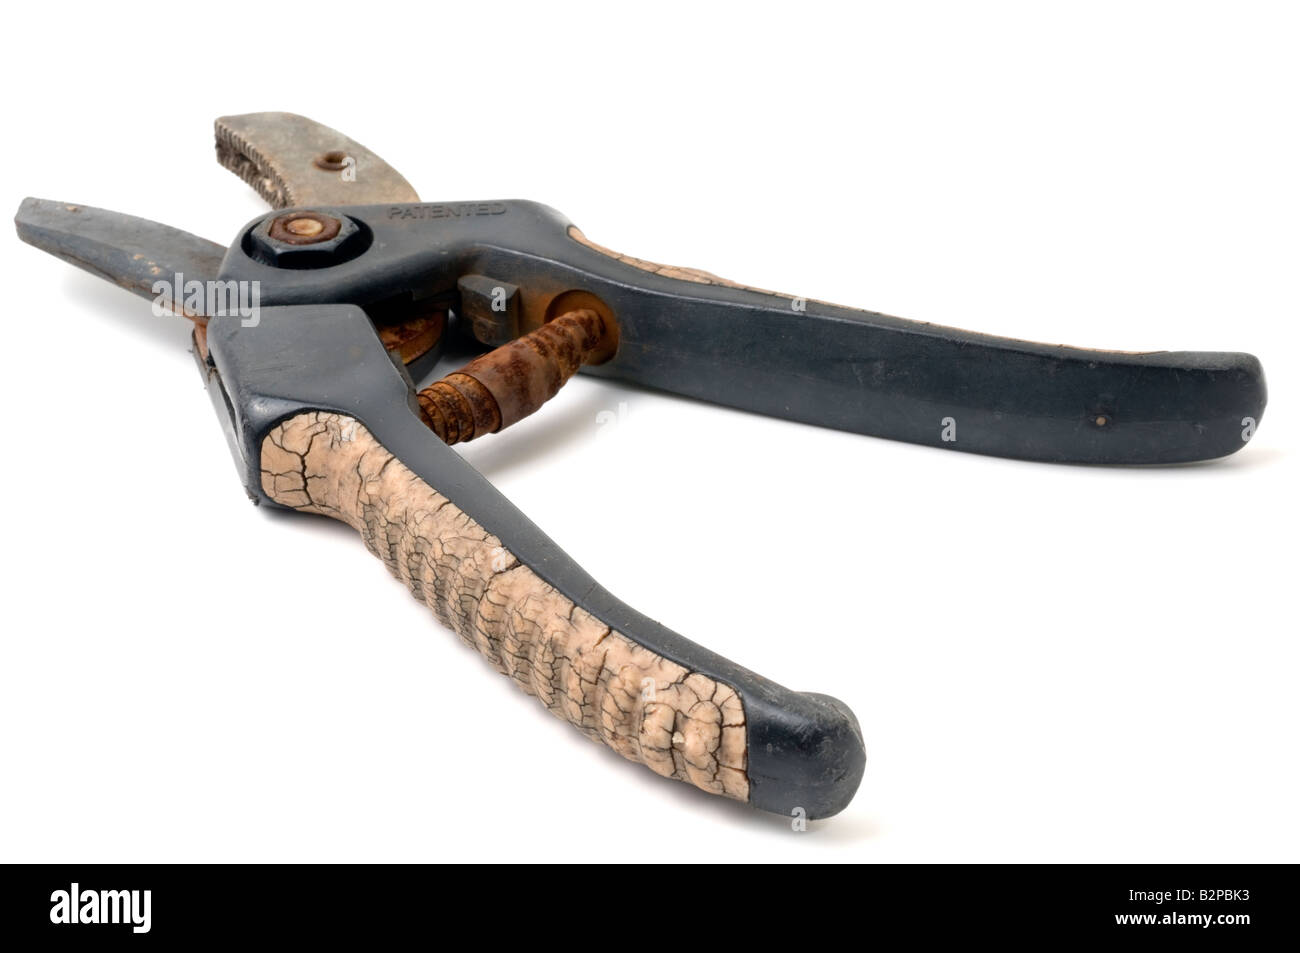 Old worn out garden secateurs - Stock Image